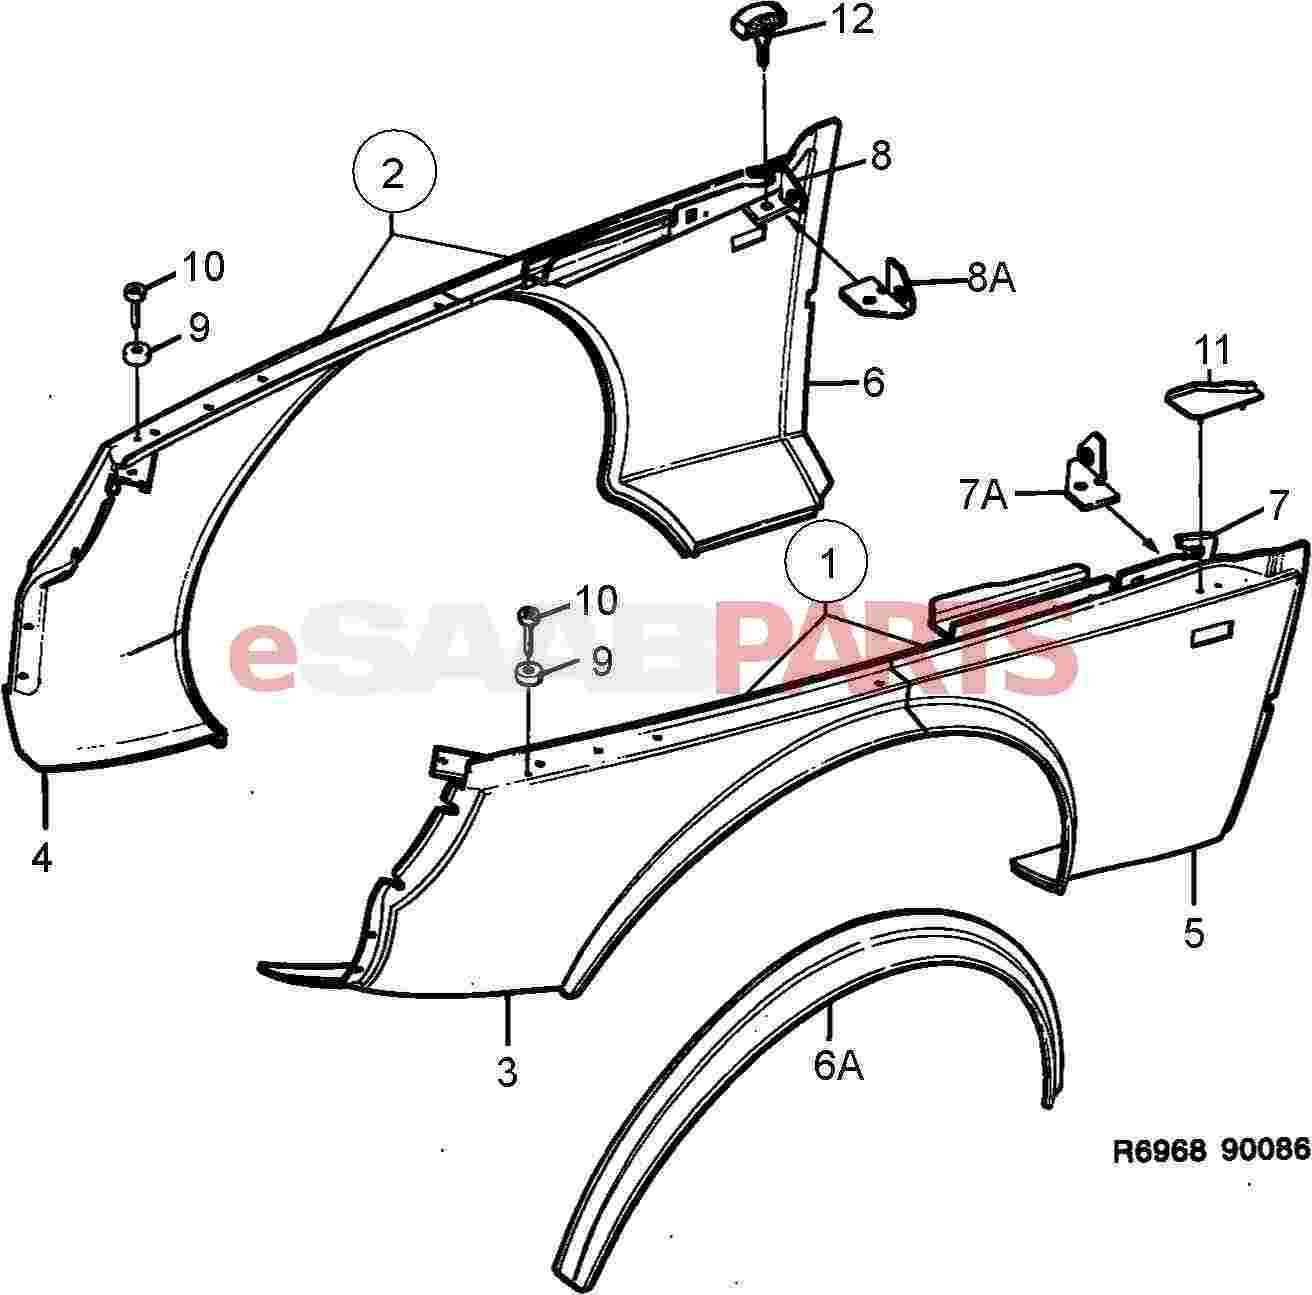 11 Engine Exterior 8 10hp together with Roof Parts Names furthermore Mopar Pressure Hose 55398915ab moreover Casement Window Assembly Diagram Hurd as well Car Body Parts Diagram. on exterior car part names